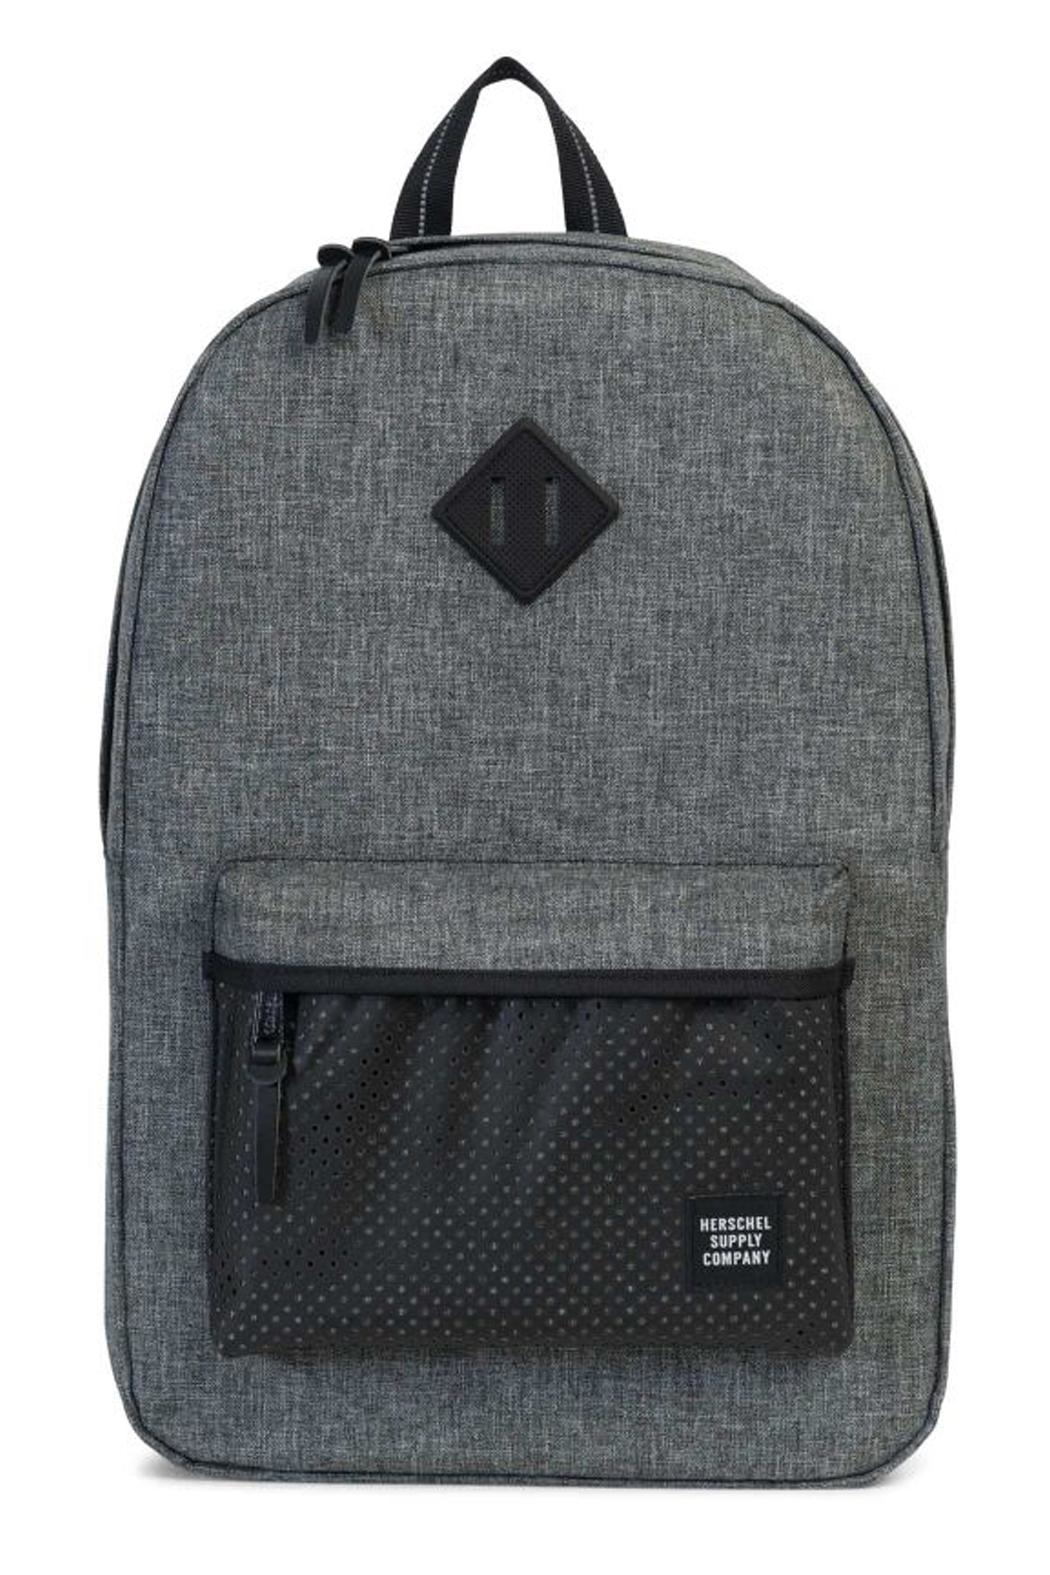 6be4e27e7a26 Herschel Supply Co. Raven Heritage Backpack from Pennsylvania by ...